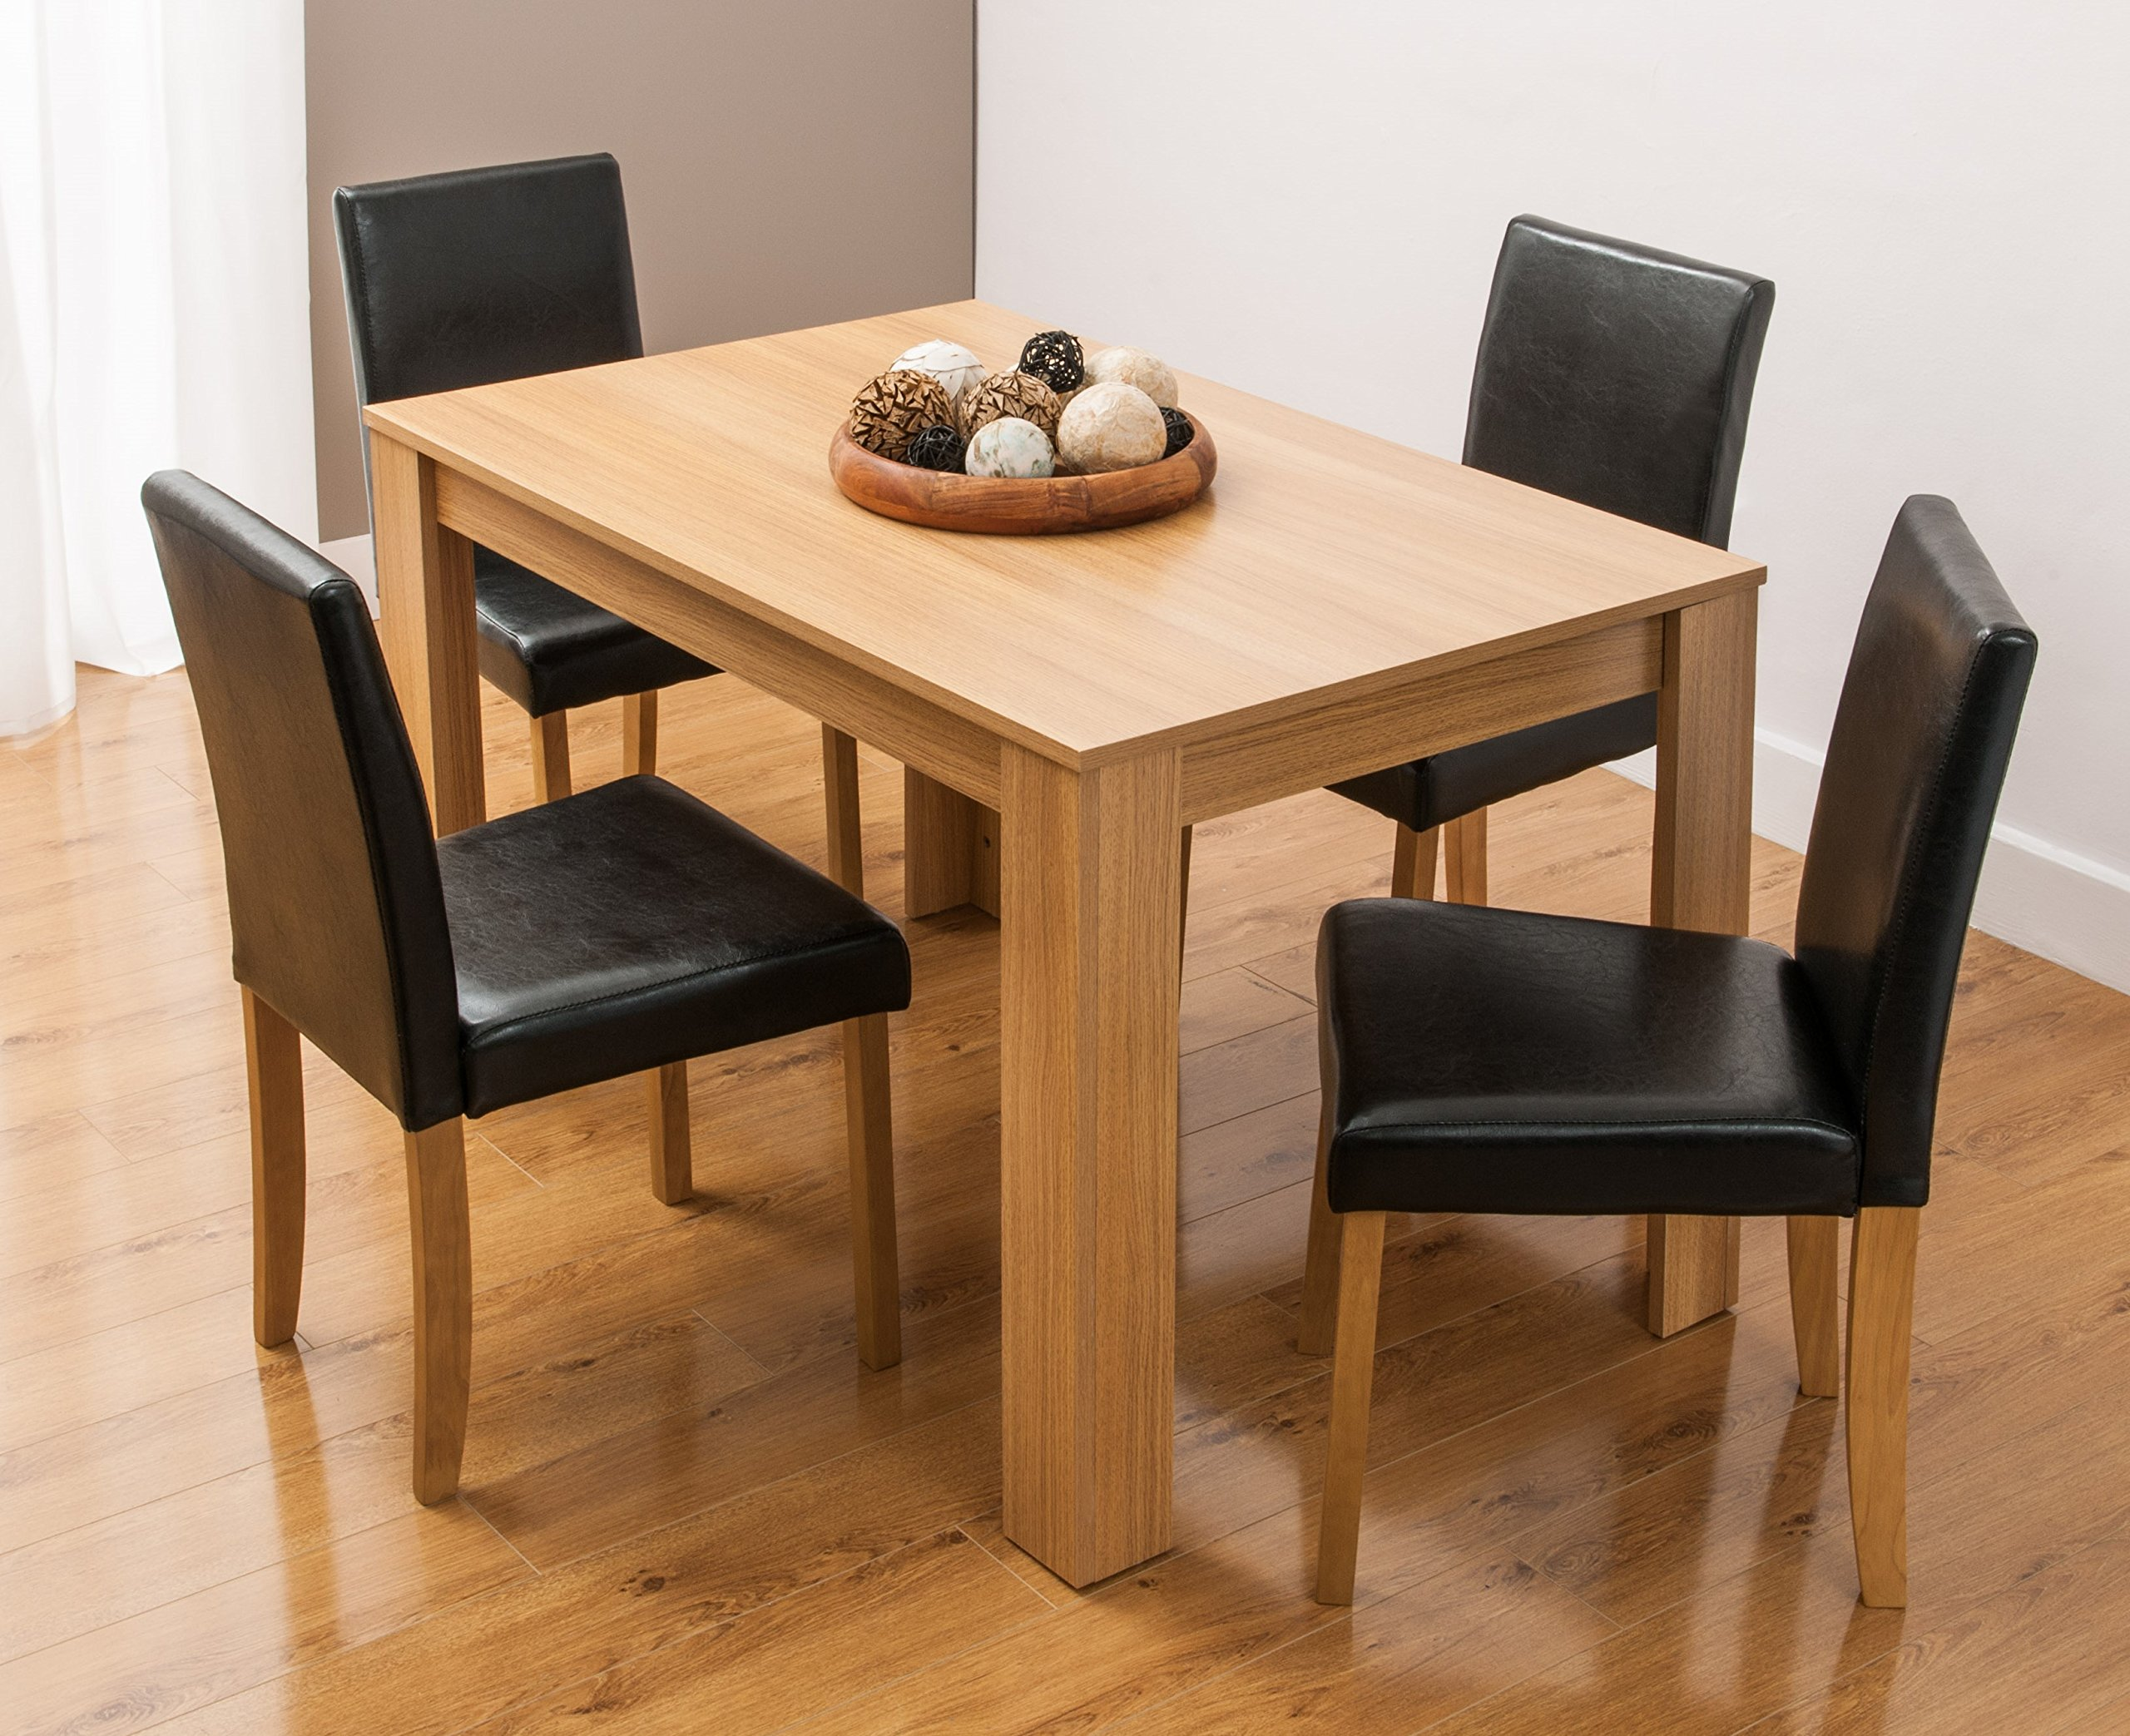 Dining Table and 11 Chairs with Faux Leather Oak Furniture Room Set